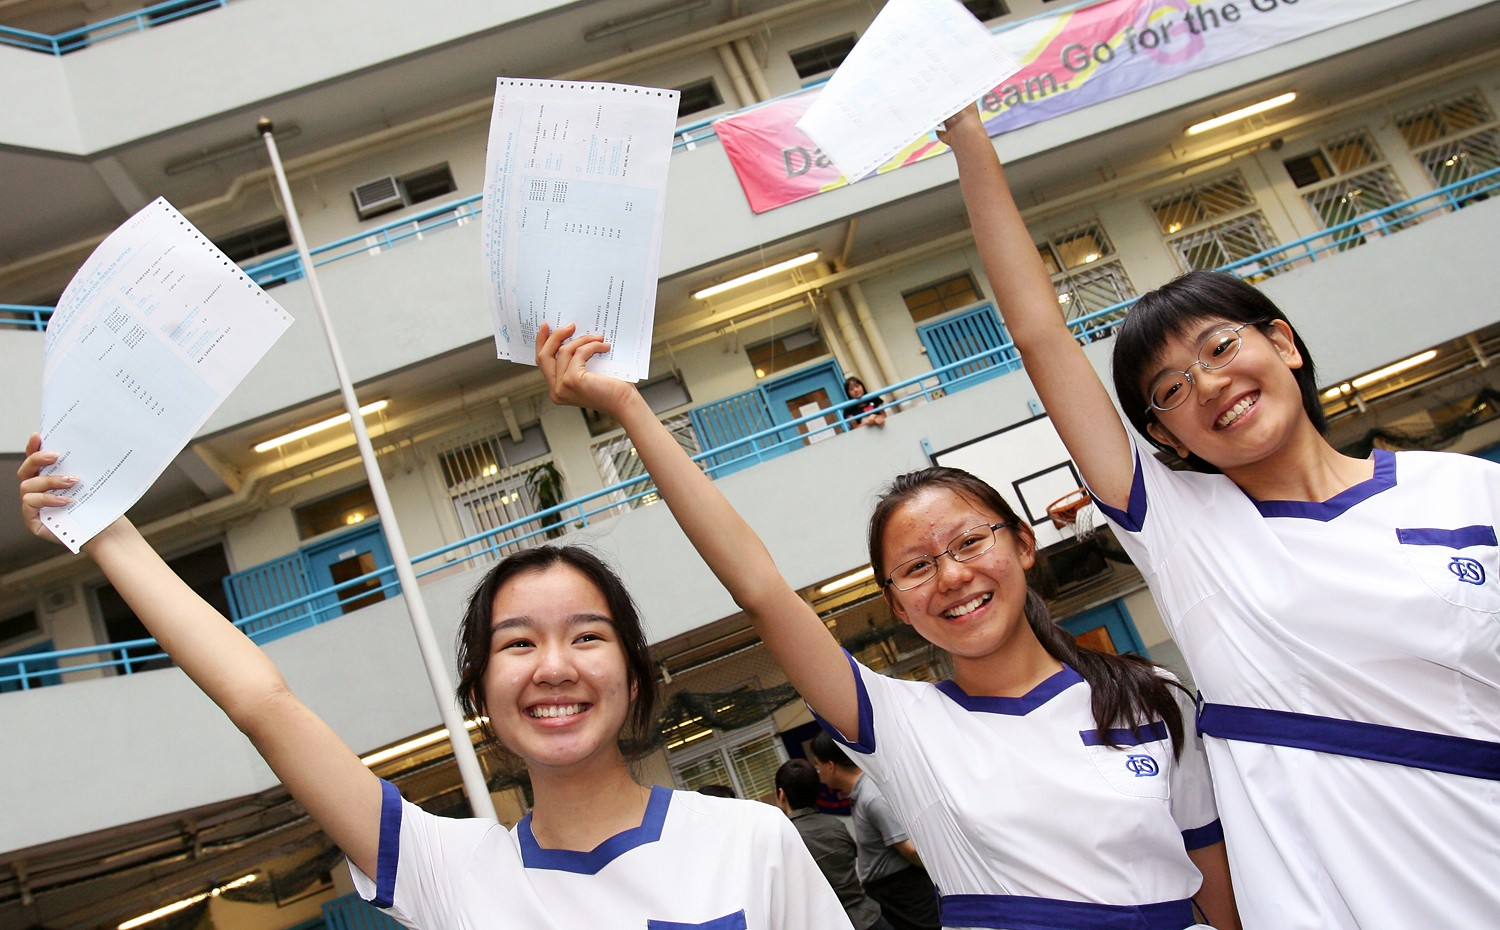 843df1d9e37 'Without a place to sleep, how can you dream?' Miss Hong Kong Louisa Mak  says young people need affordable housing | South China Morning Post